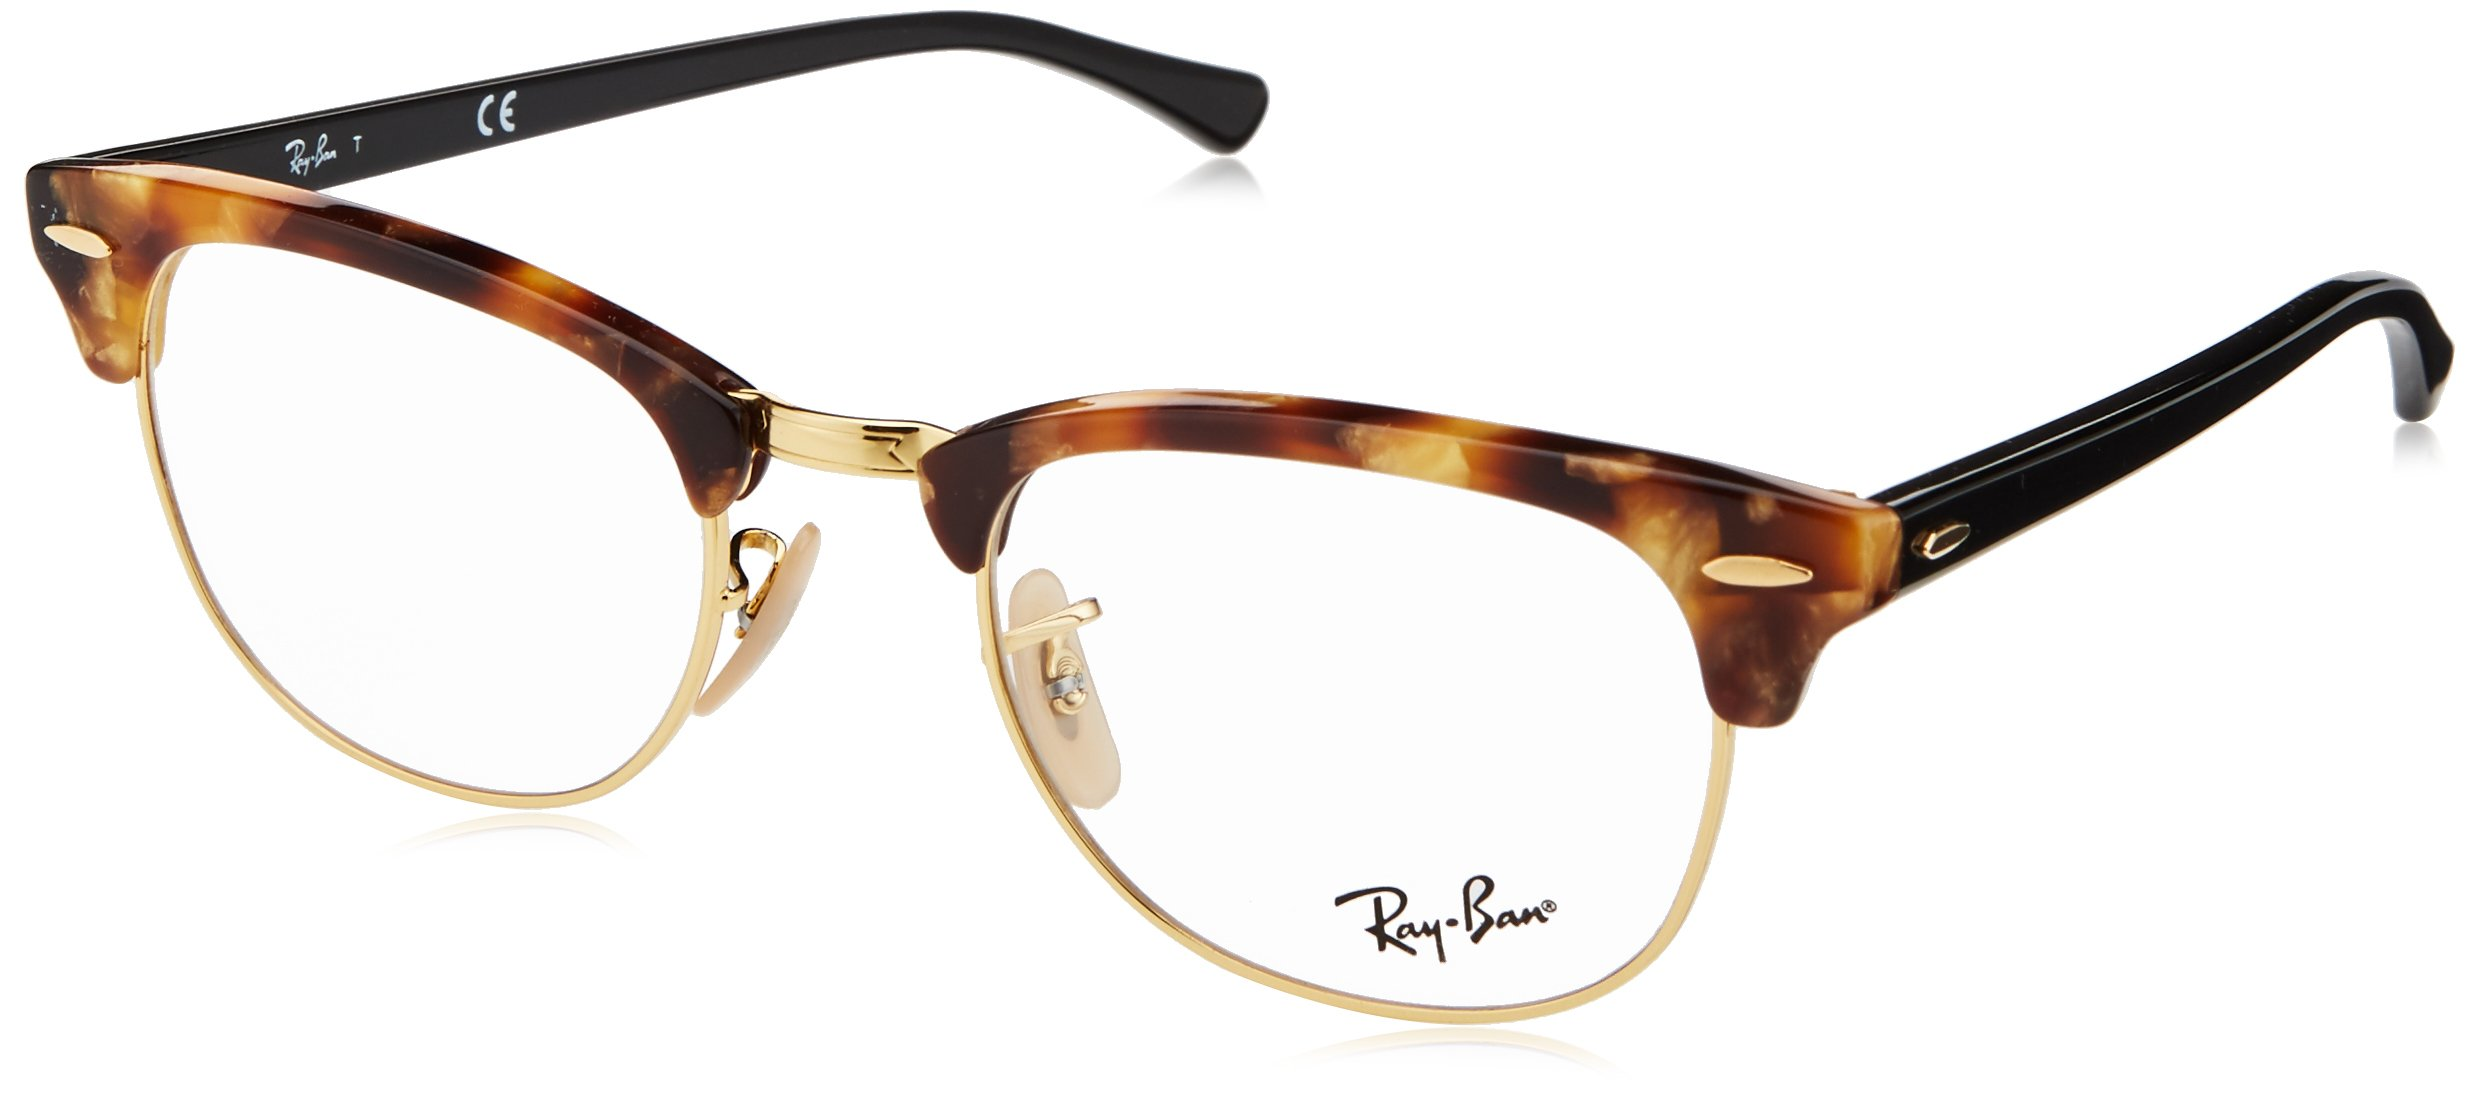 Ray-Ban RX5154 Clubmaster Eyeglasses Brown Havana 51mm